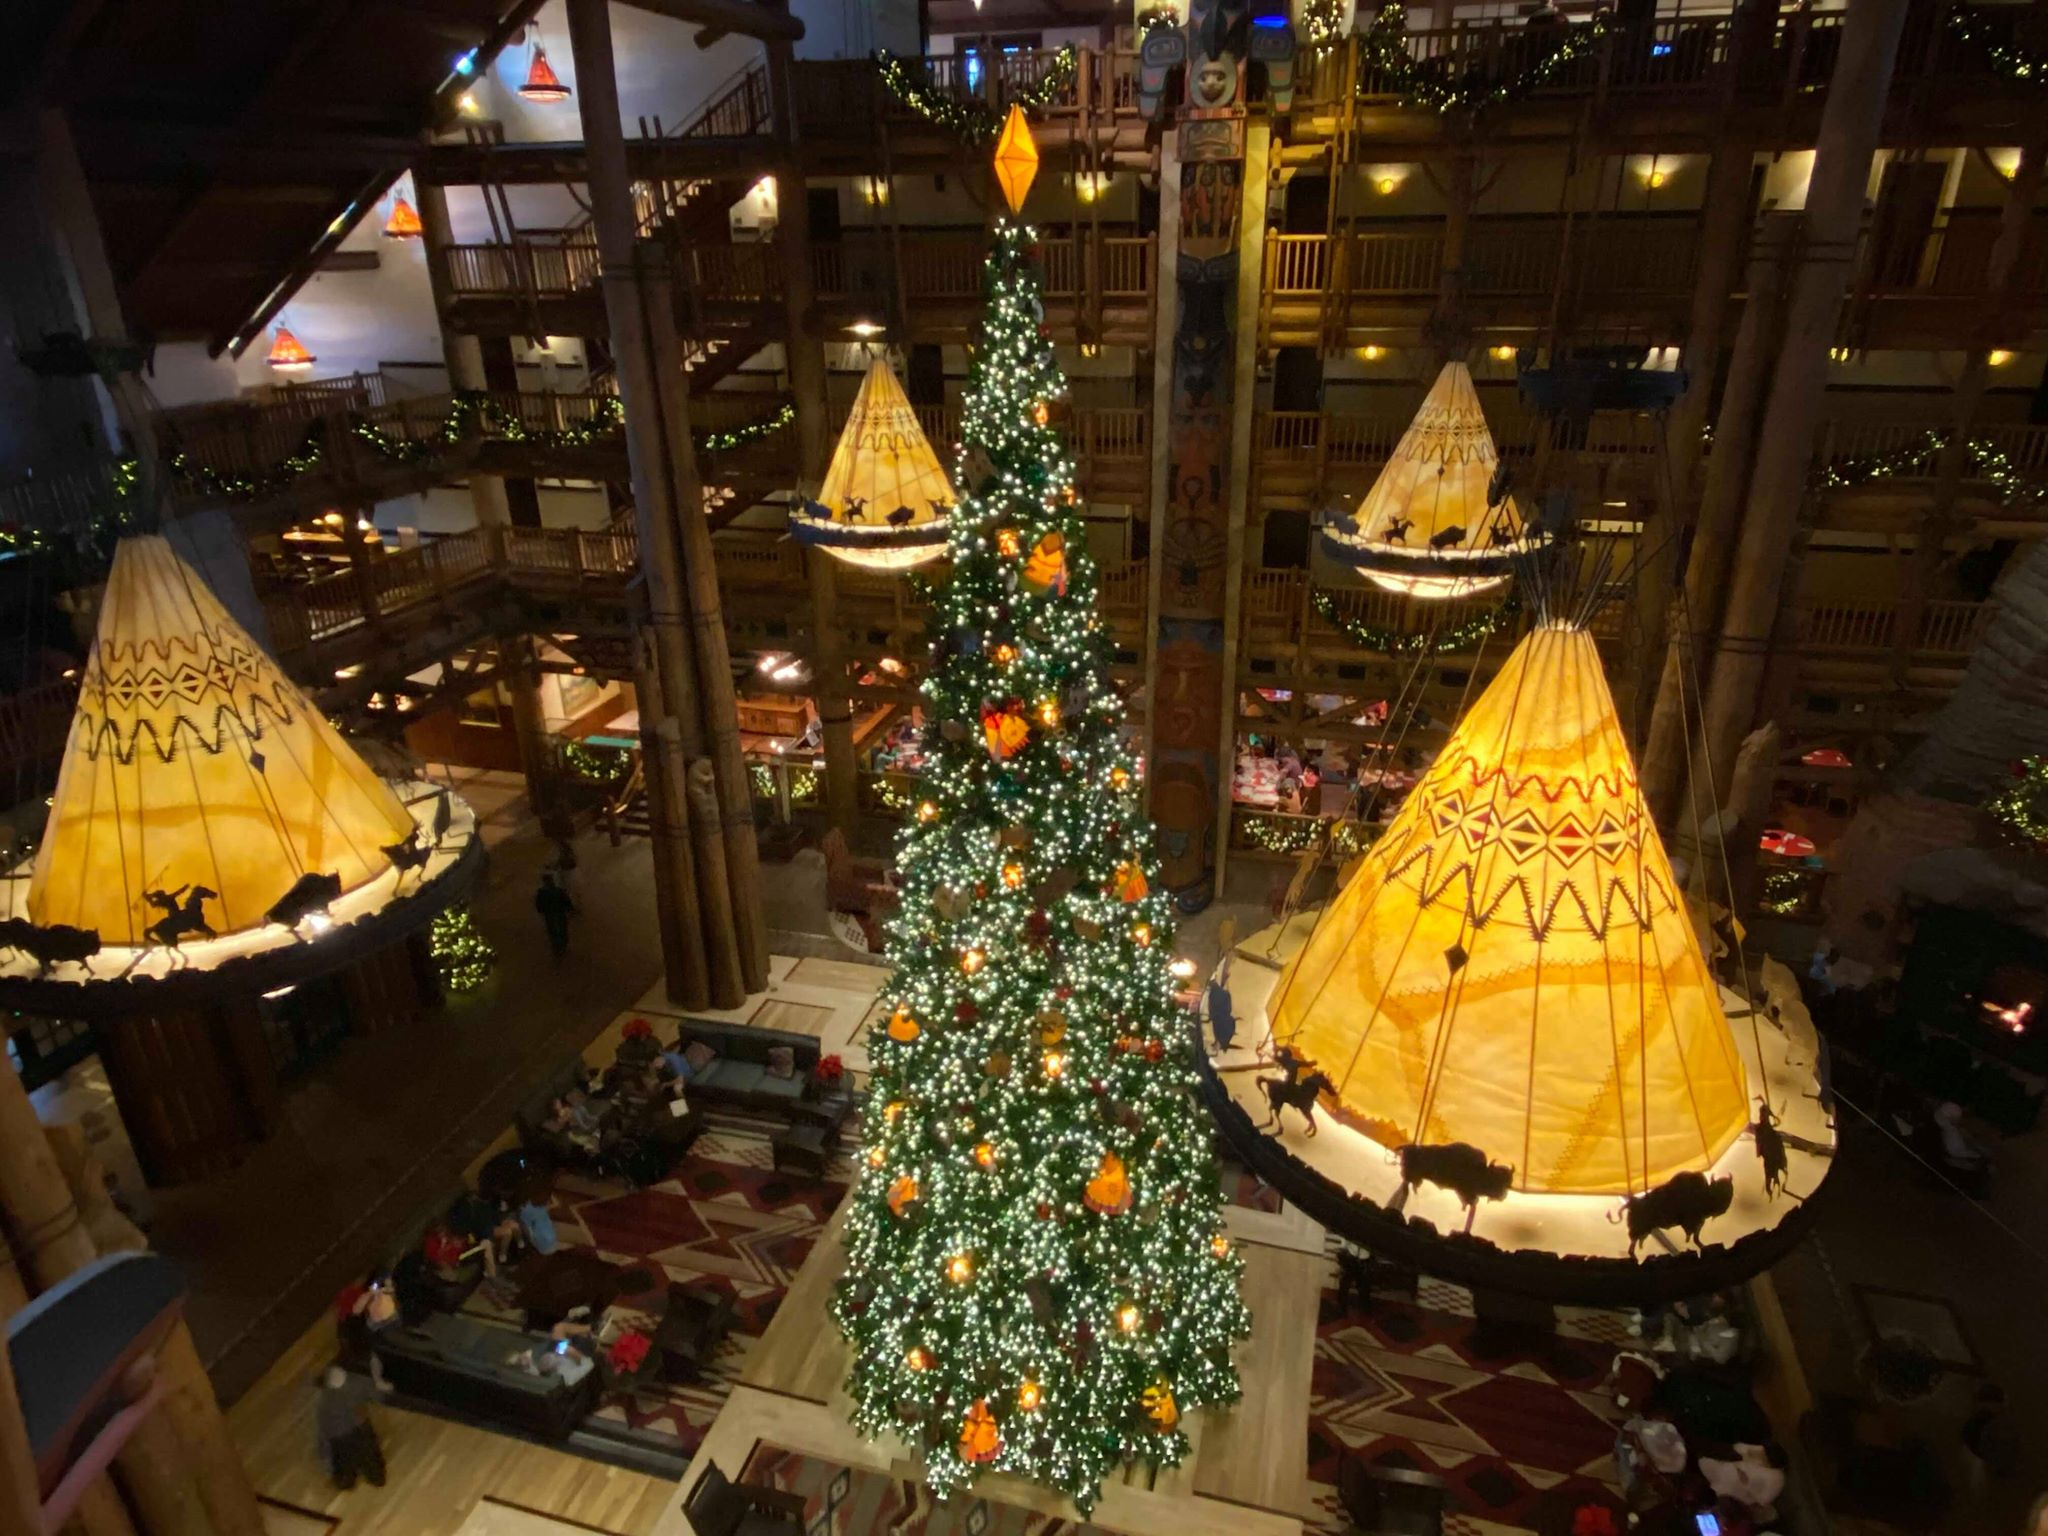 The Towering Christmas Tree Is Up at